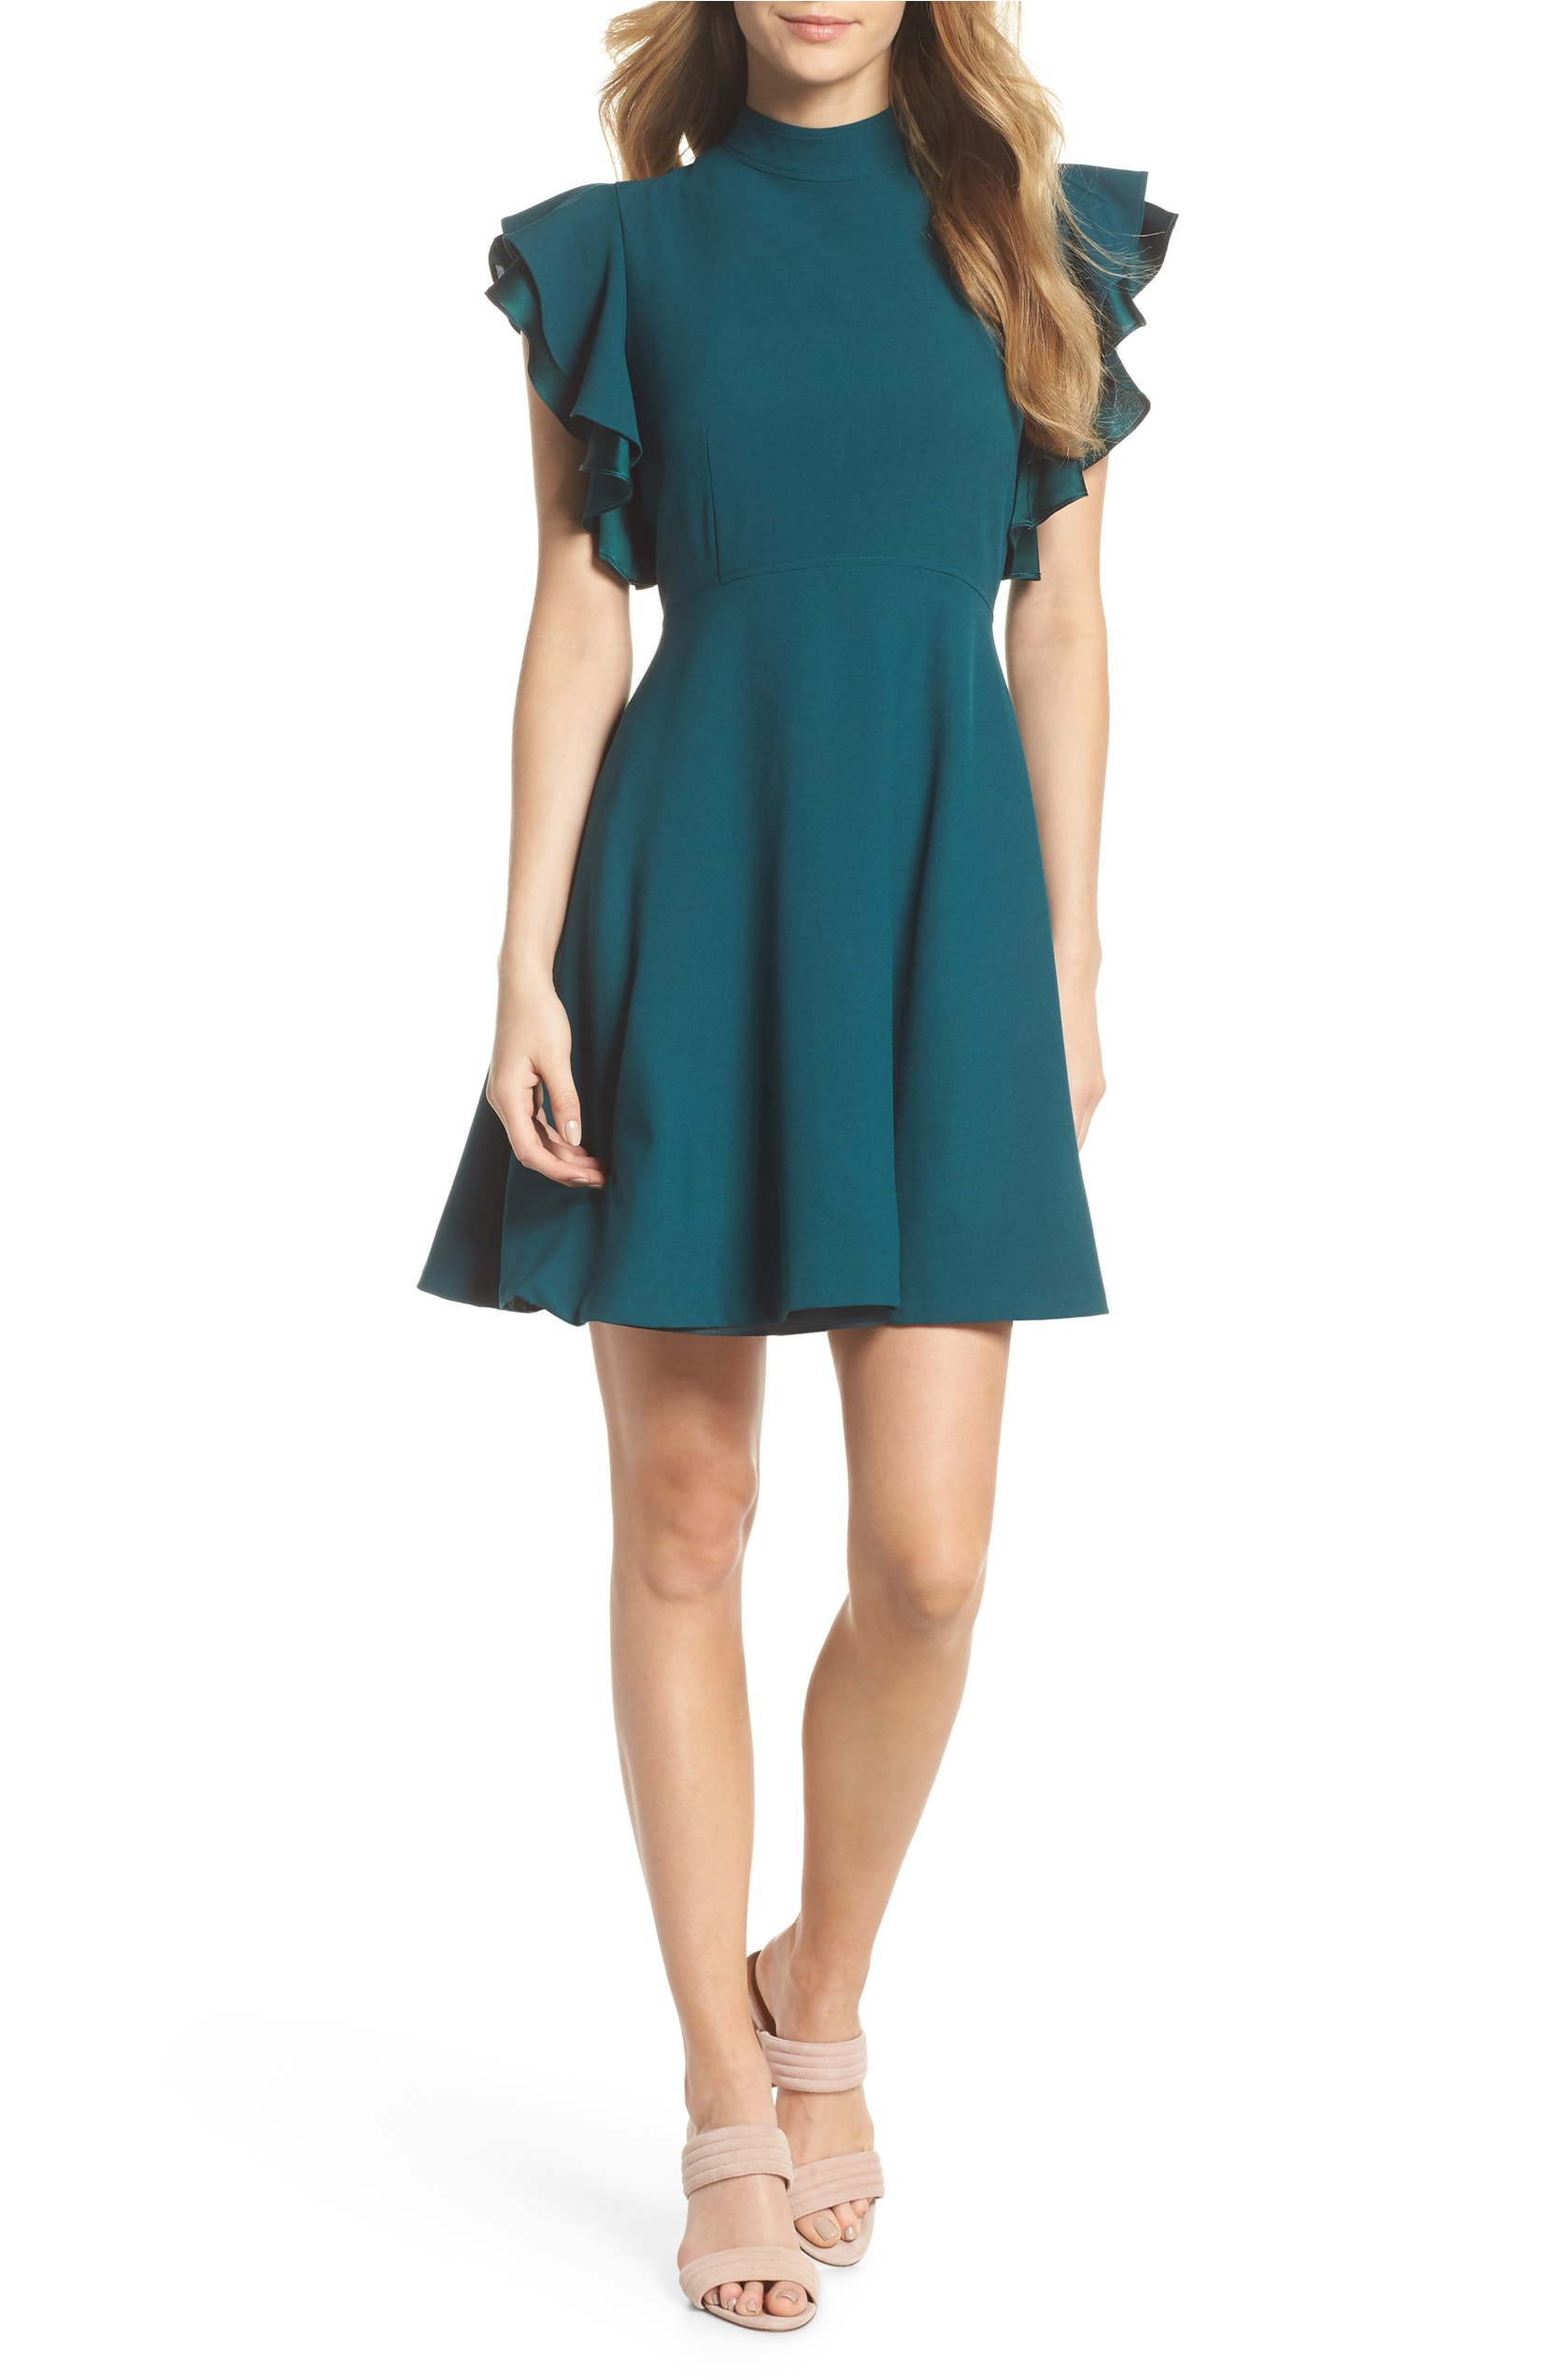 This color looks great on everyone! Shop this dress  here .